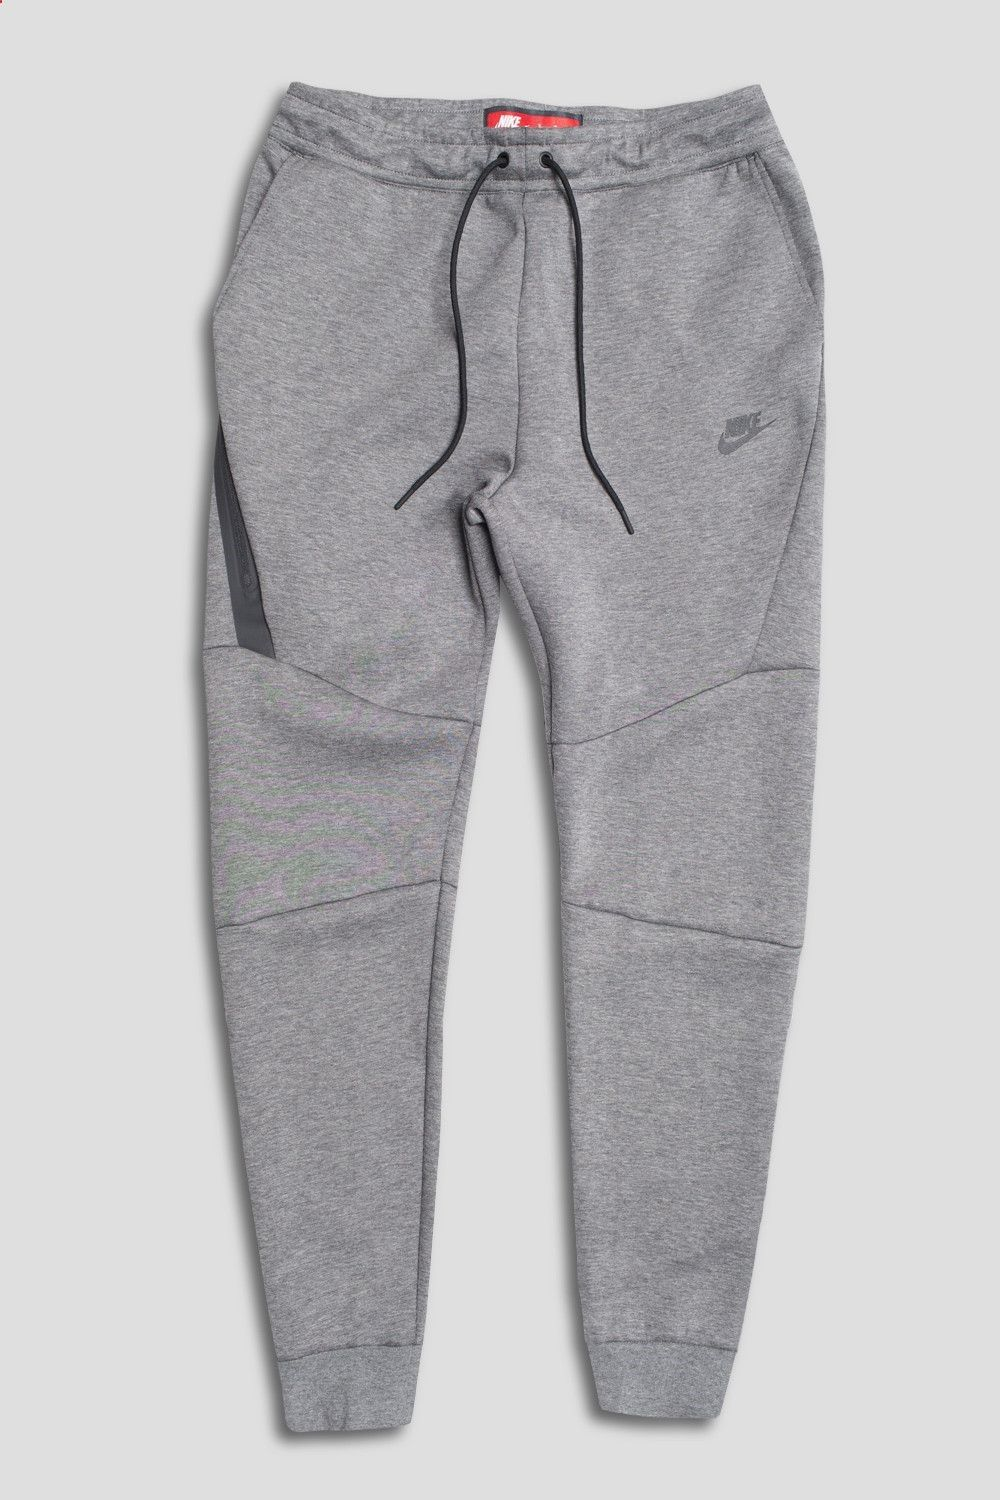 The Nike Sportswear Tech Fleece Mens Joggers give you all day comfort in a… 457ac612592